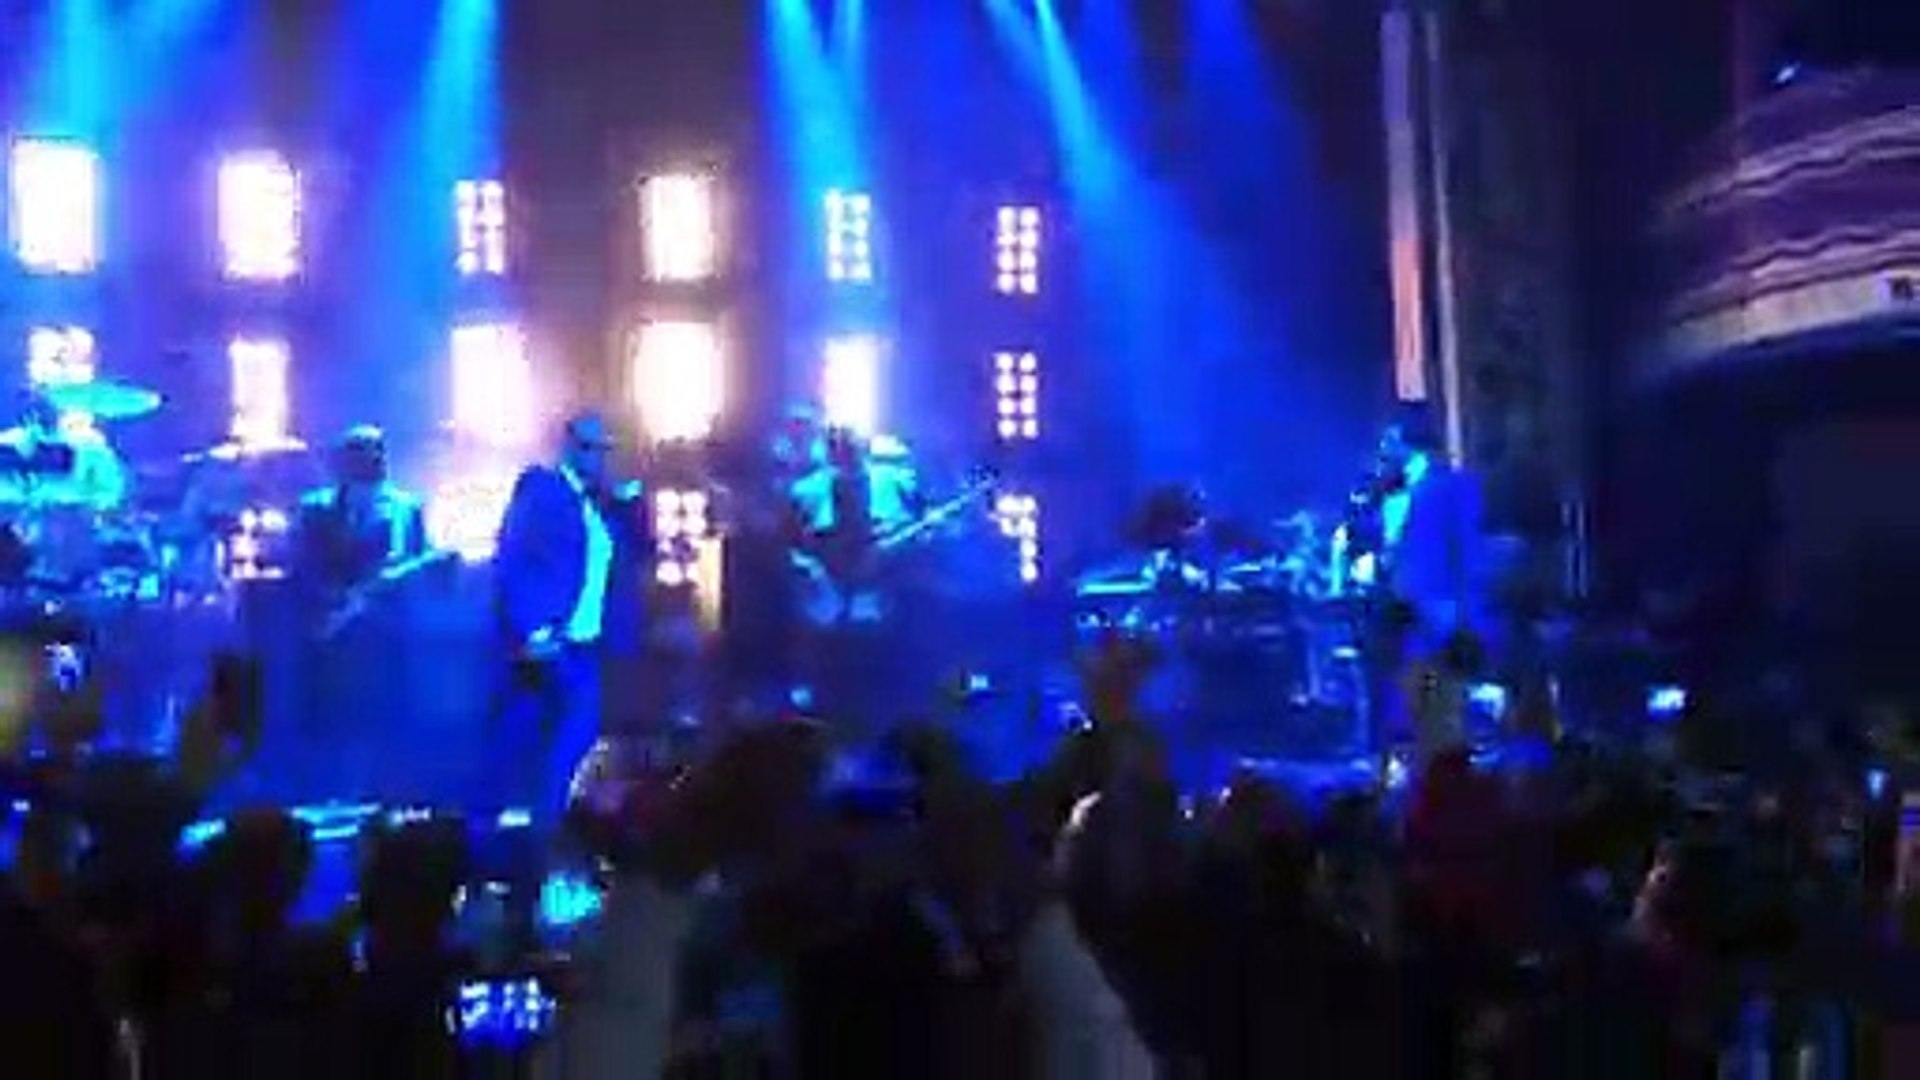 JAYZ & CAM'RON PERFORM WELCOME TO NEW YORK CITY LIVE IN NYC AT WEBSTER HALL 2019 BSIDES 2 C